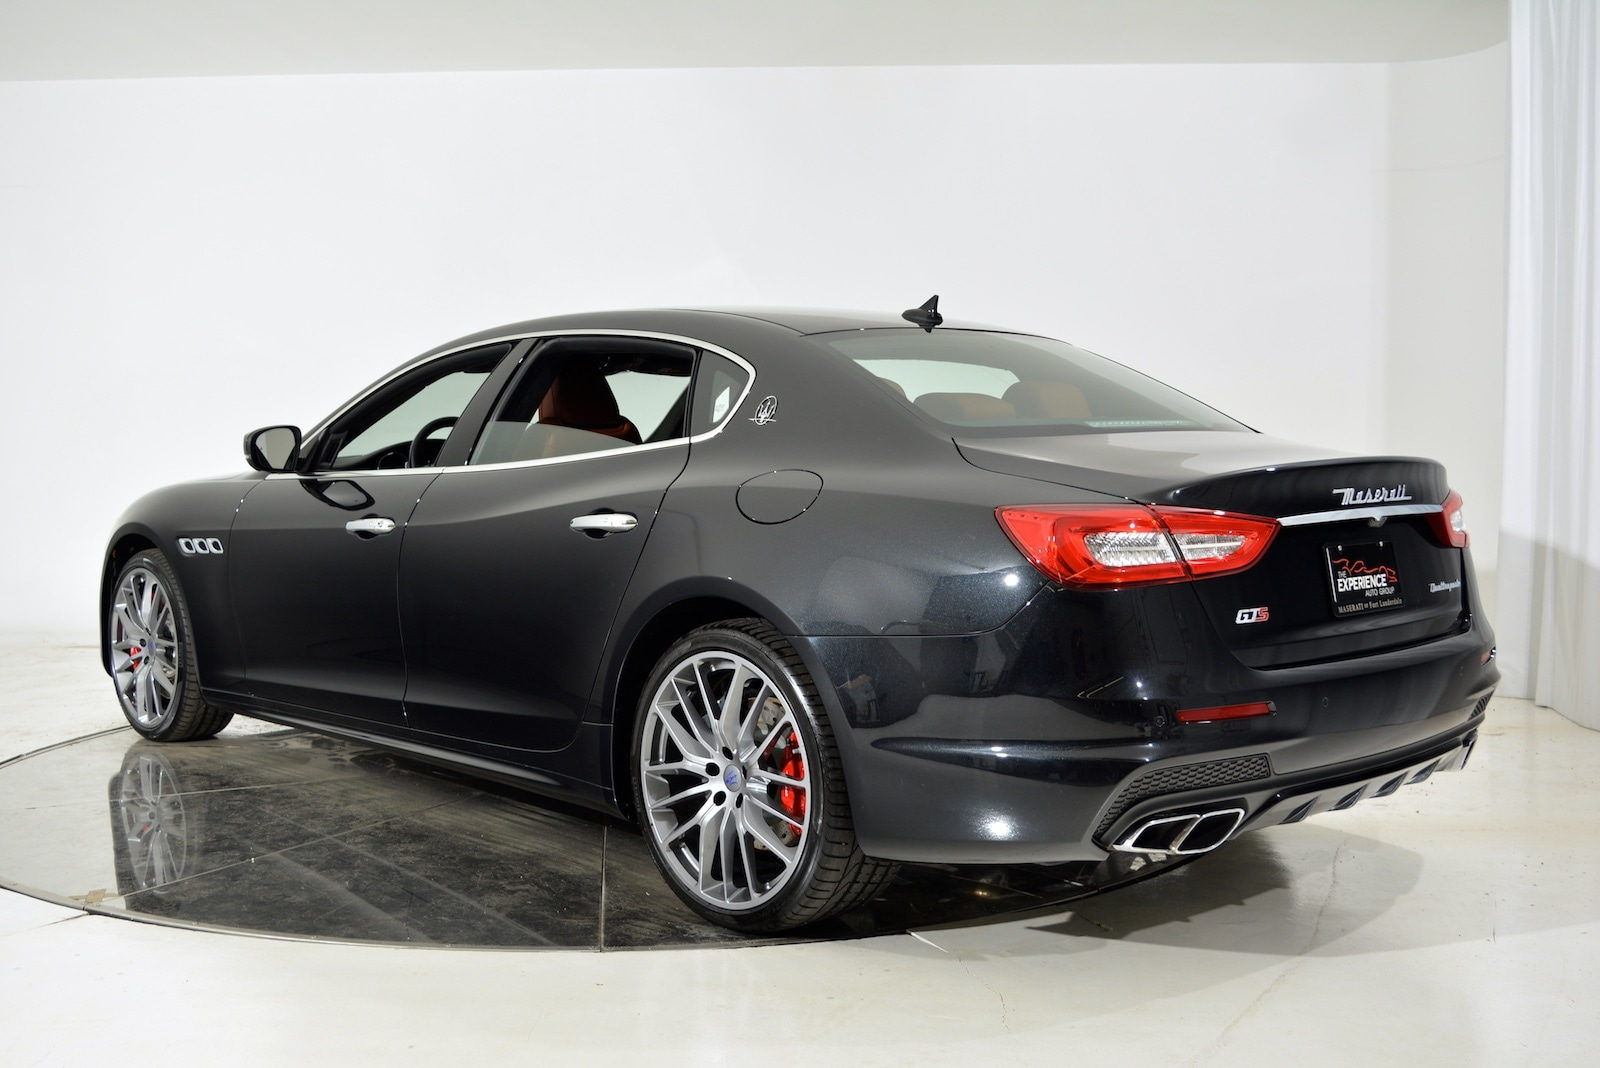 new 2017 maserati quattroporte gts gransport for sale fort lauderdale fl vin zam56pps6h1225478. Black Bedroom Furniture Sets. Home Design Ideas